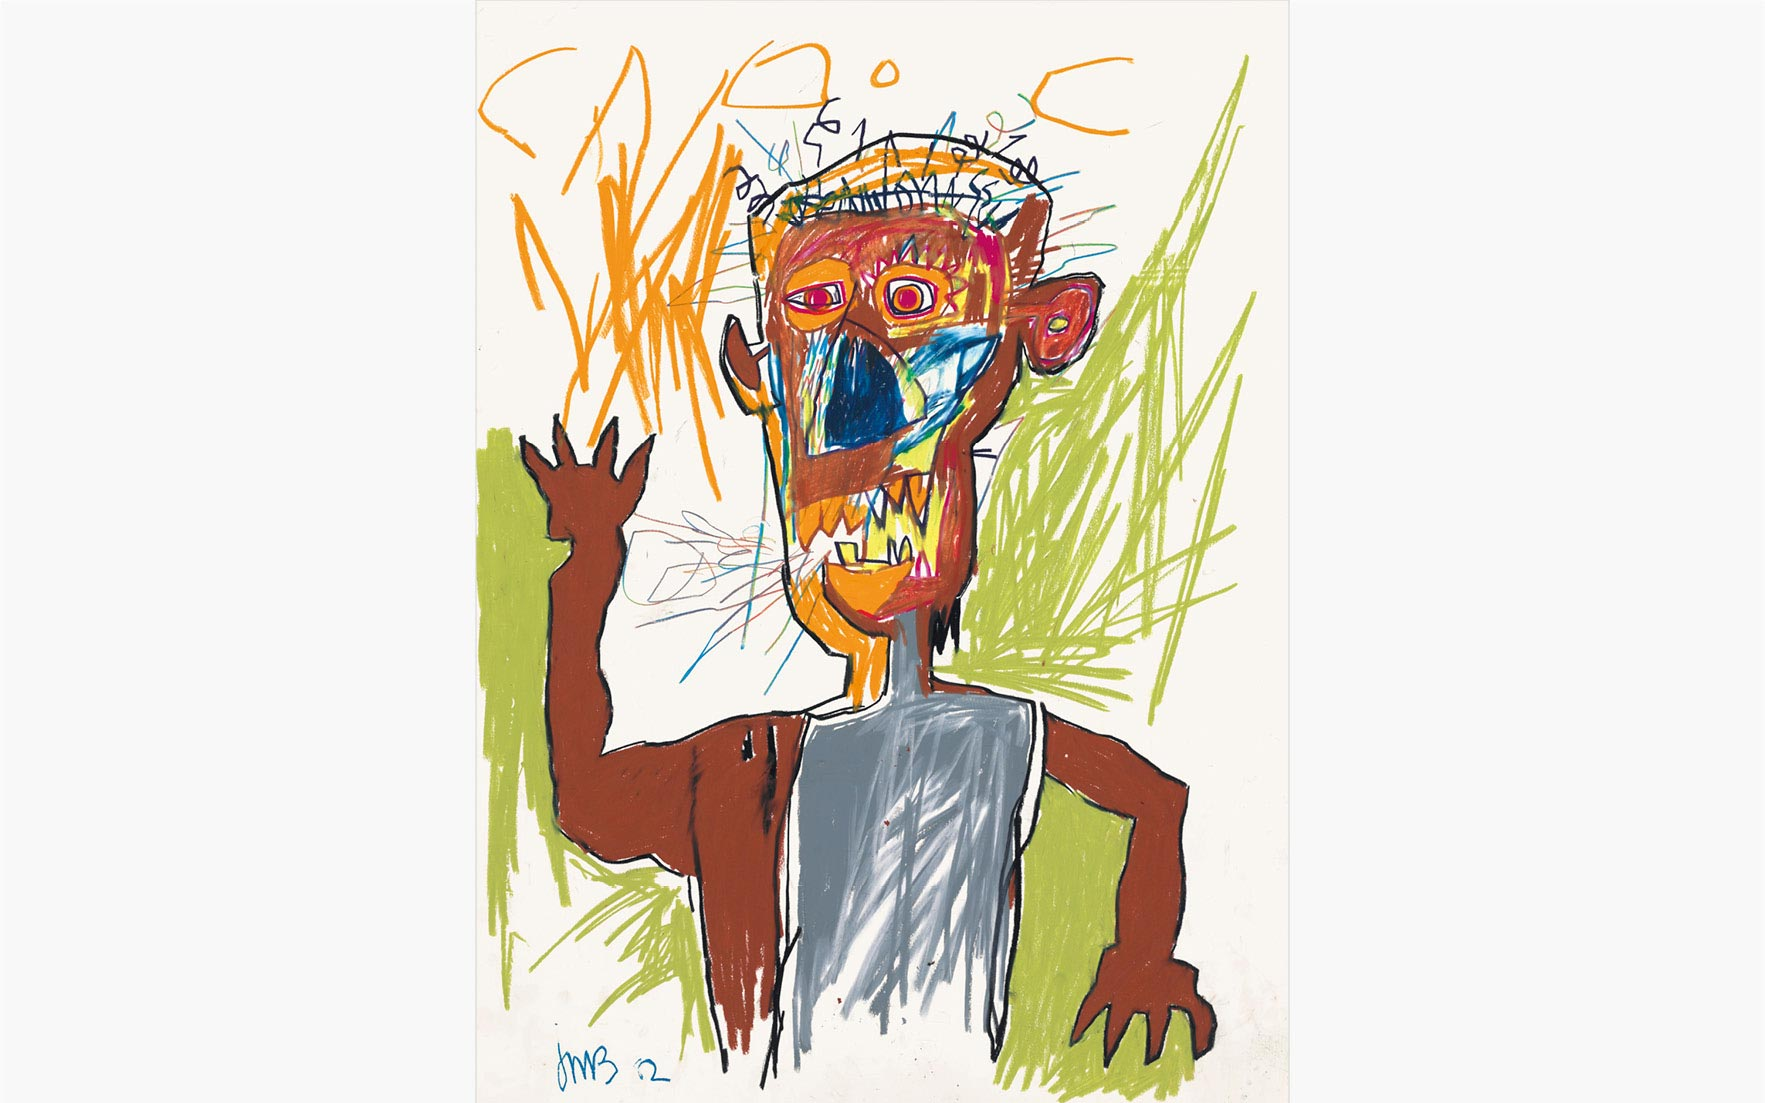 Jean-Michel Basquiat (1960–1988), Untitled, 1982. Oilstick and wax crayon on paper. 30 x 22 in. (76.2 x 55.9 cm.) Estimate $2,500,000–3,500,000. This work is offered in the Post-War and Contemporary